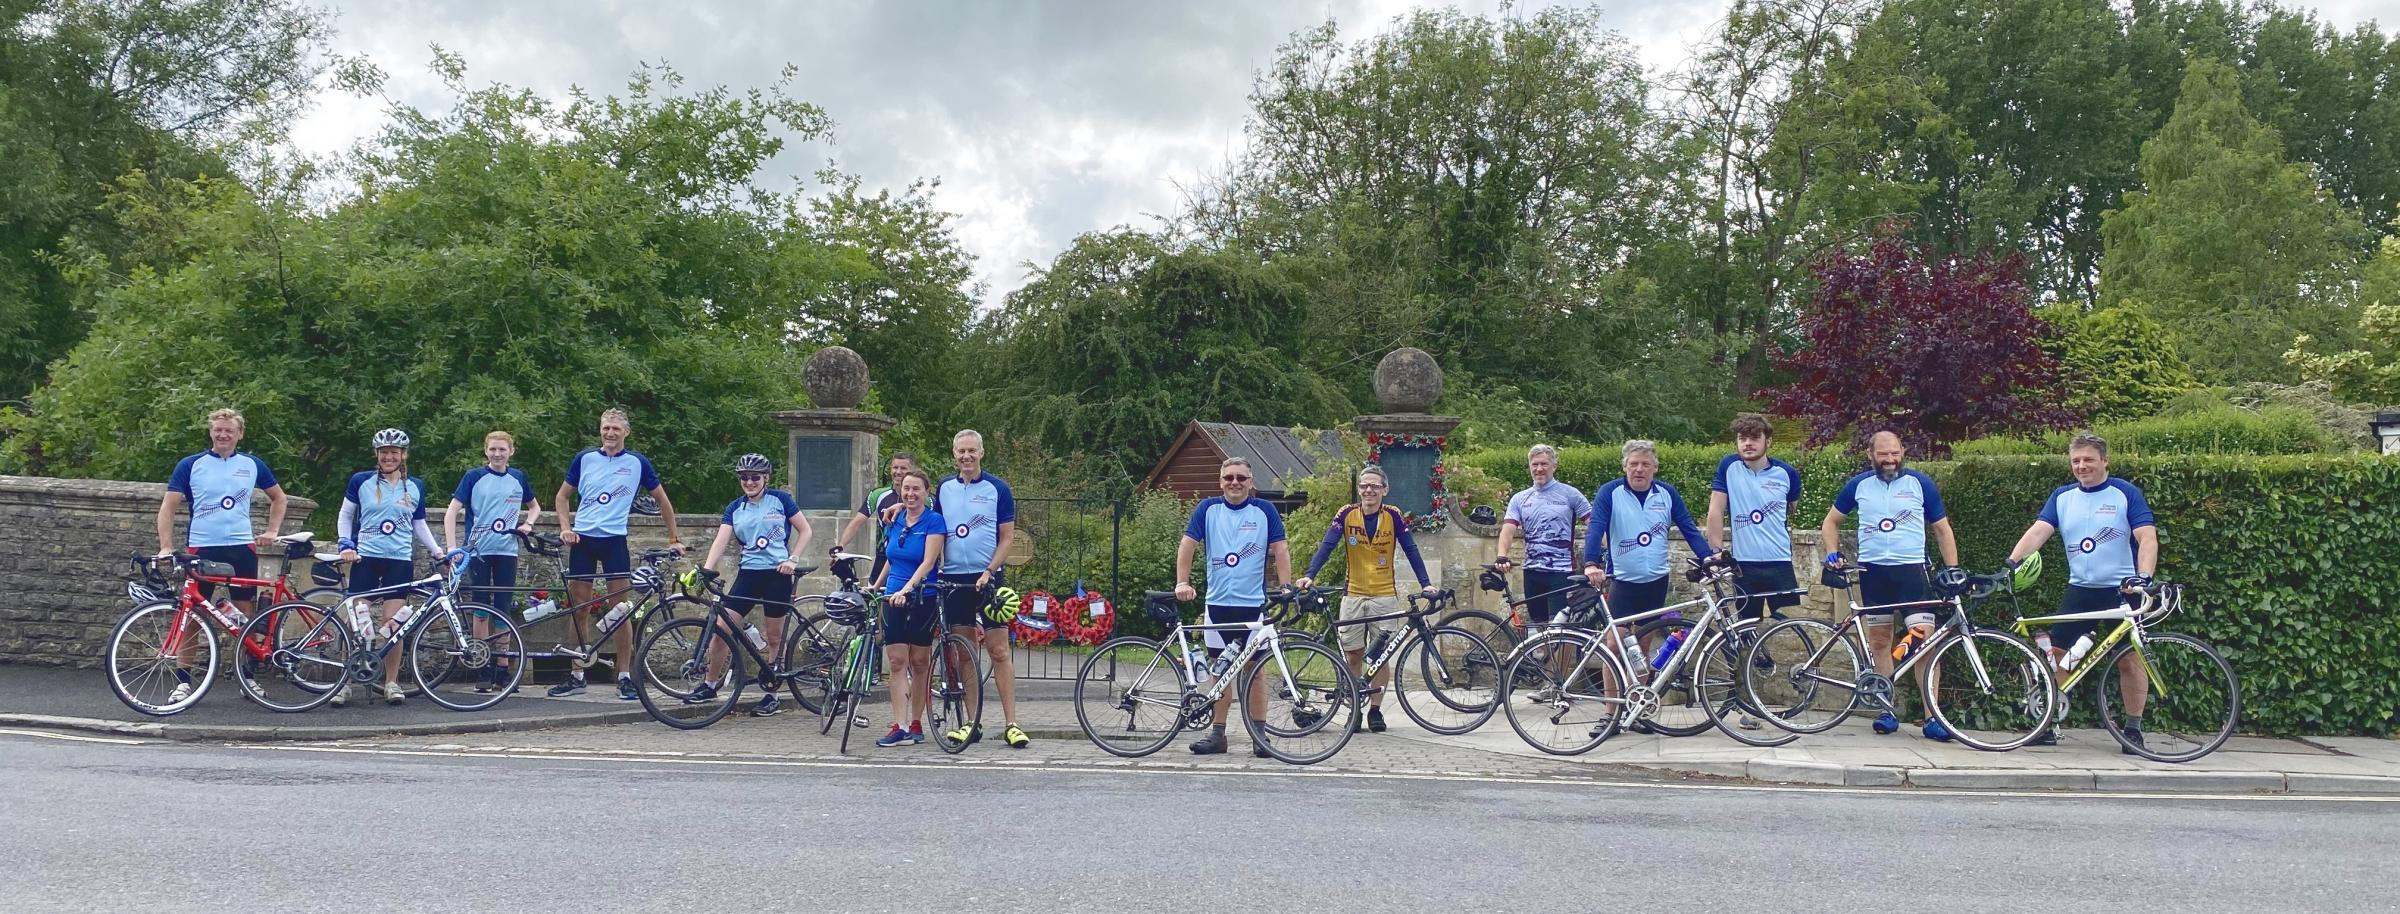 11504931 - RAF volunteers from Malmesbury raise £2,500 for veterans impacted by Covid-19